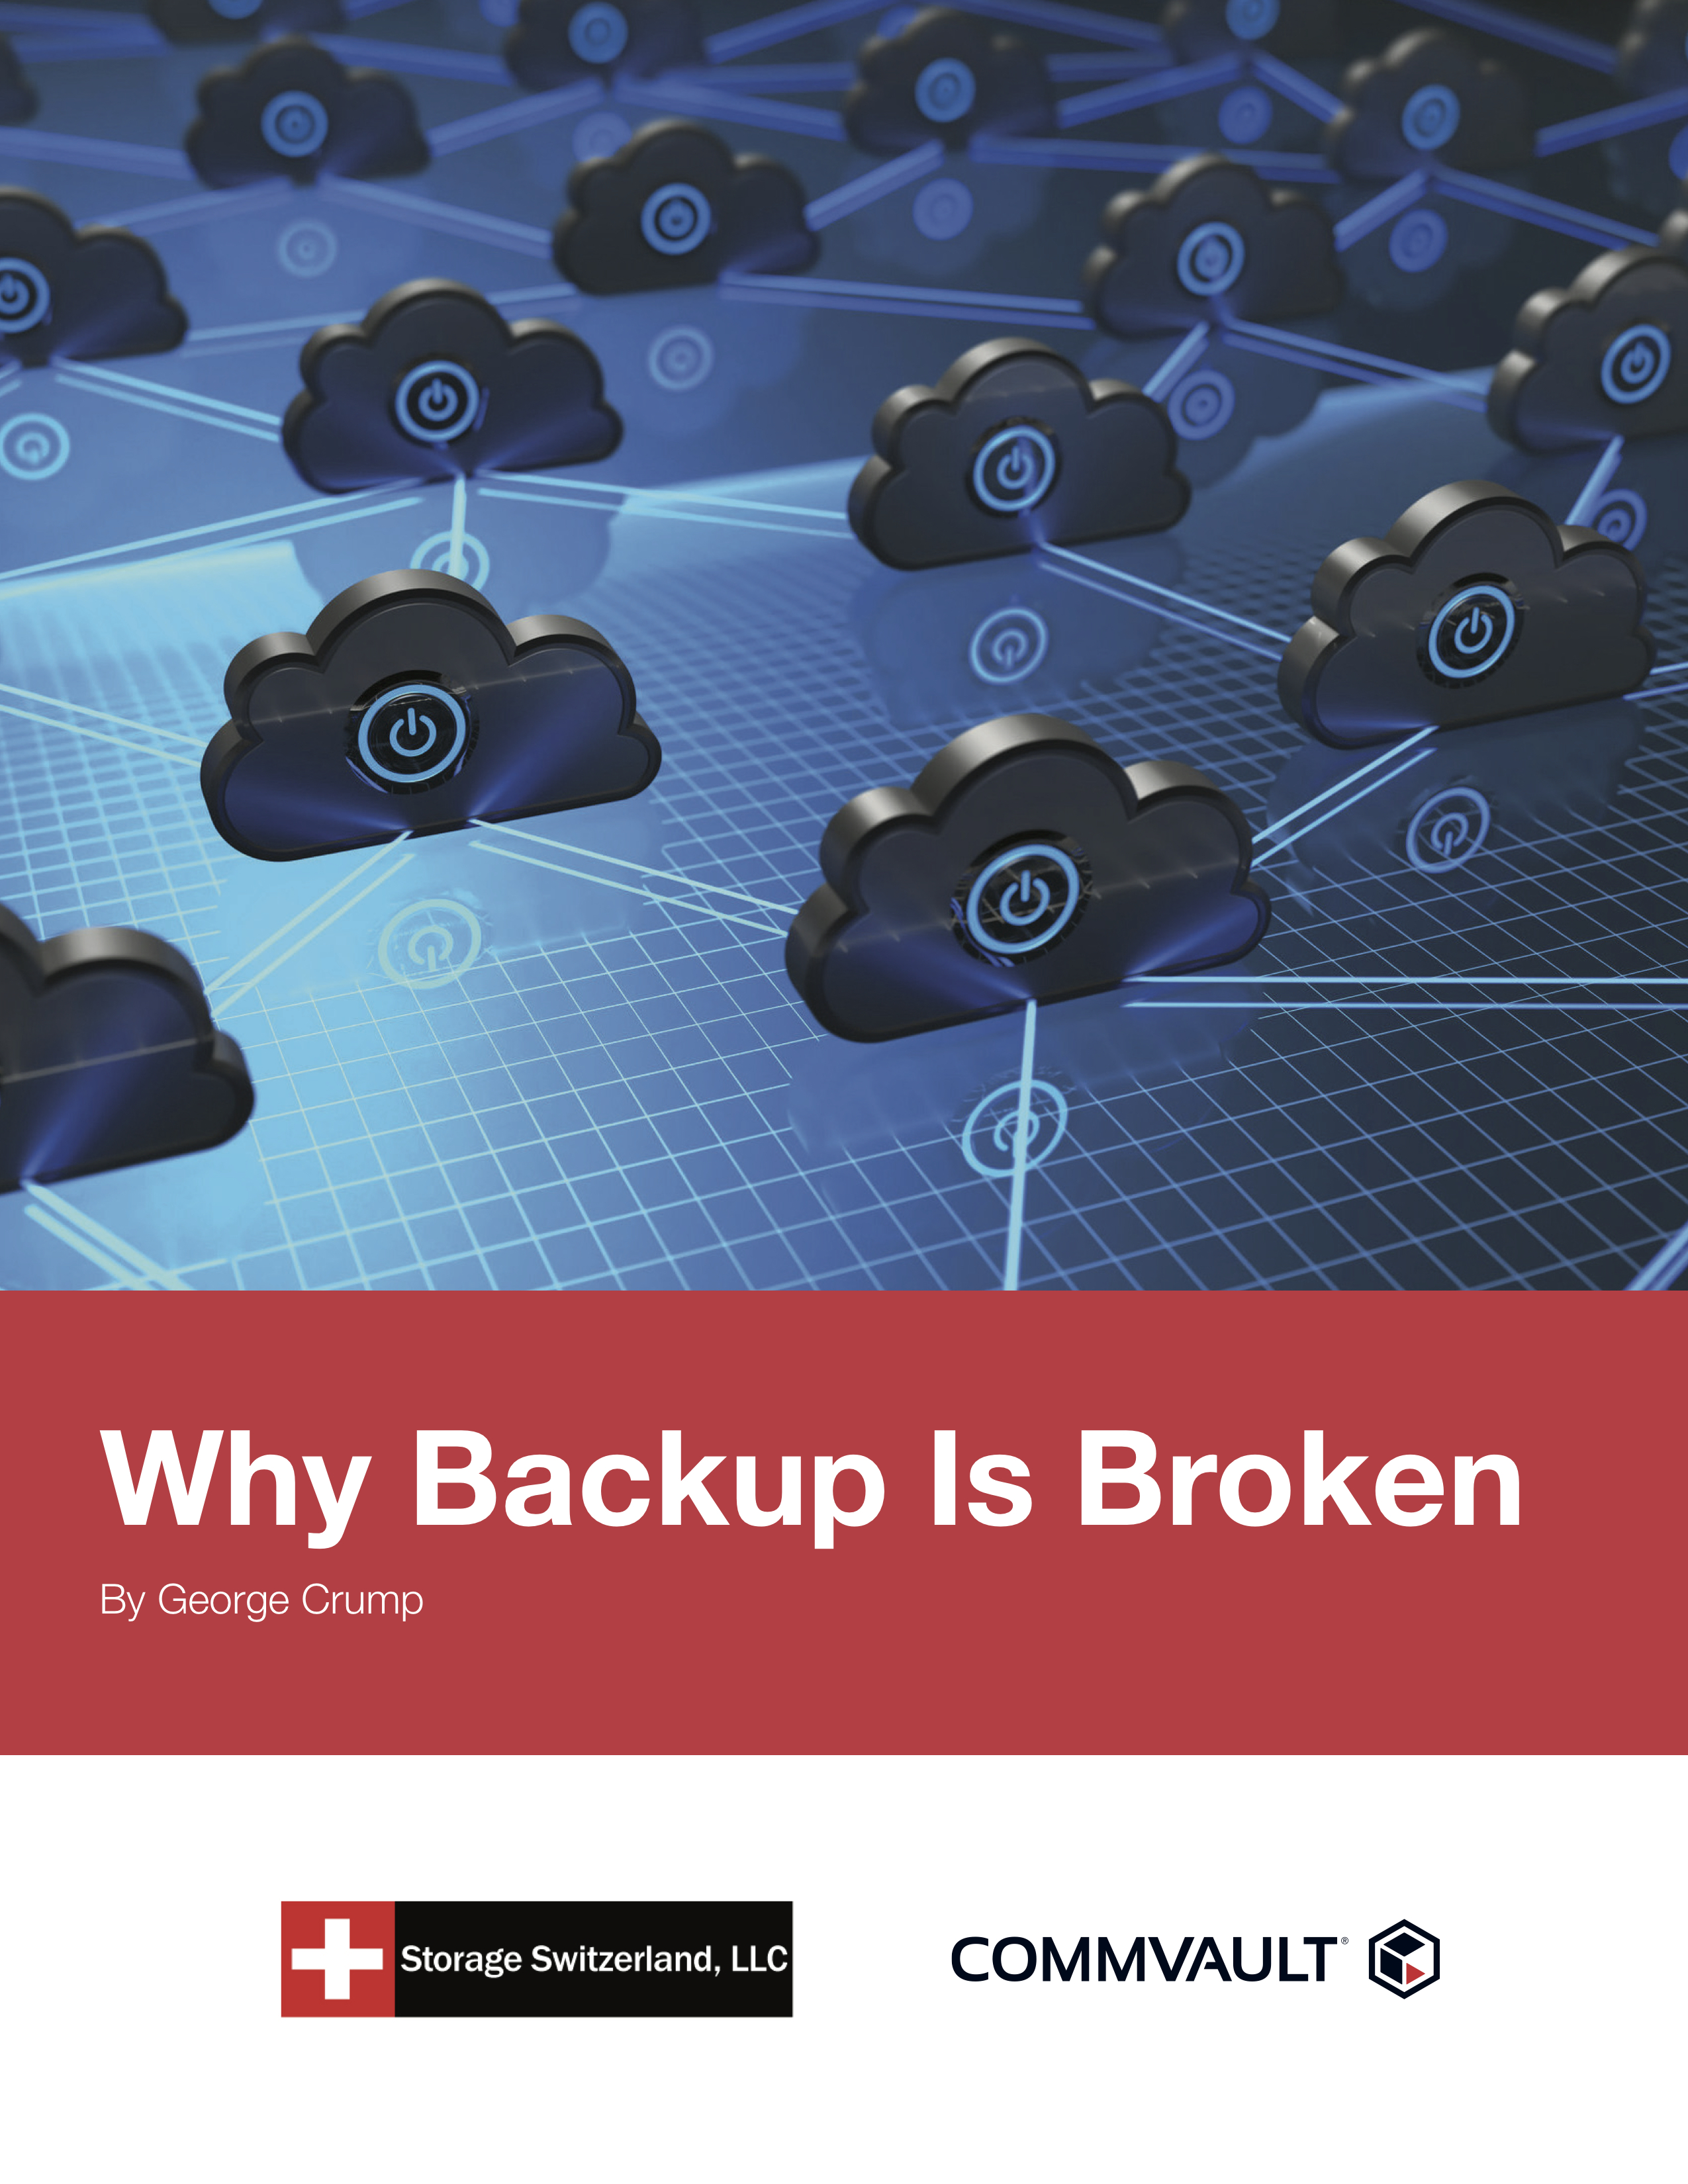 Why backup is broken